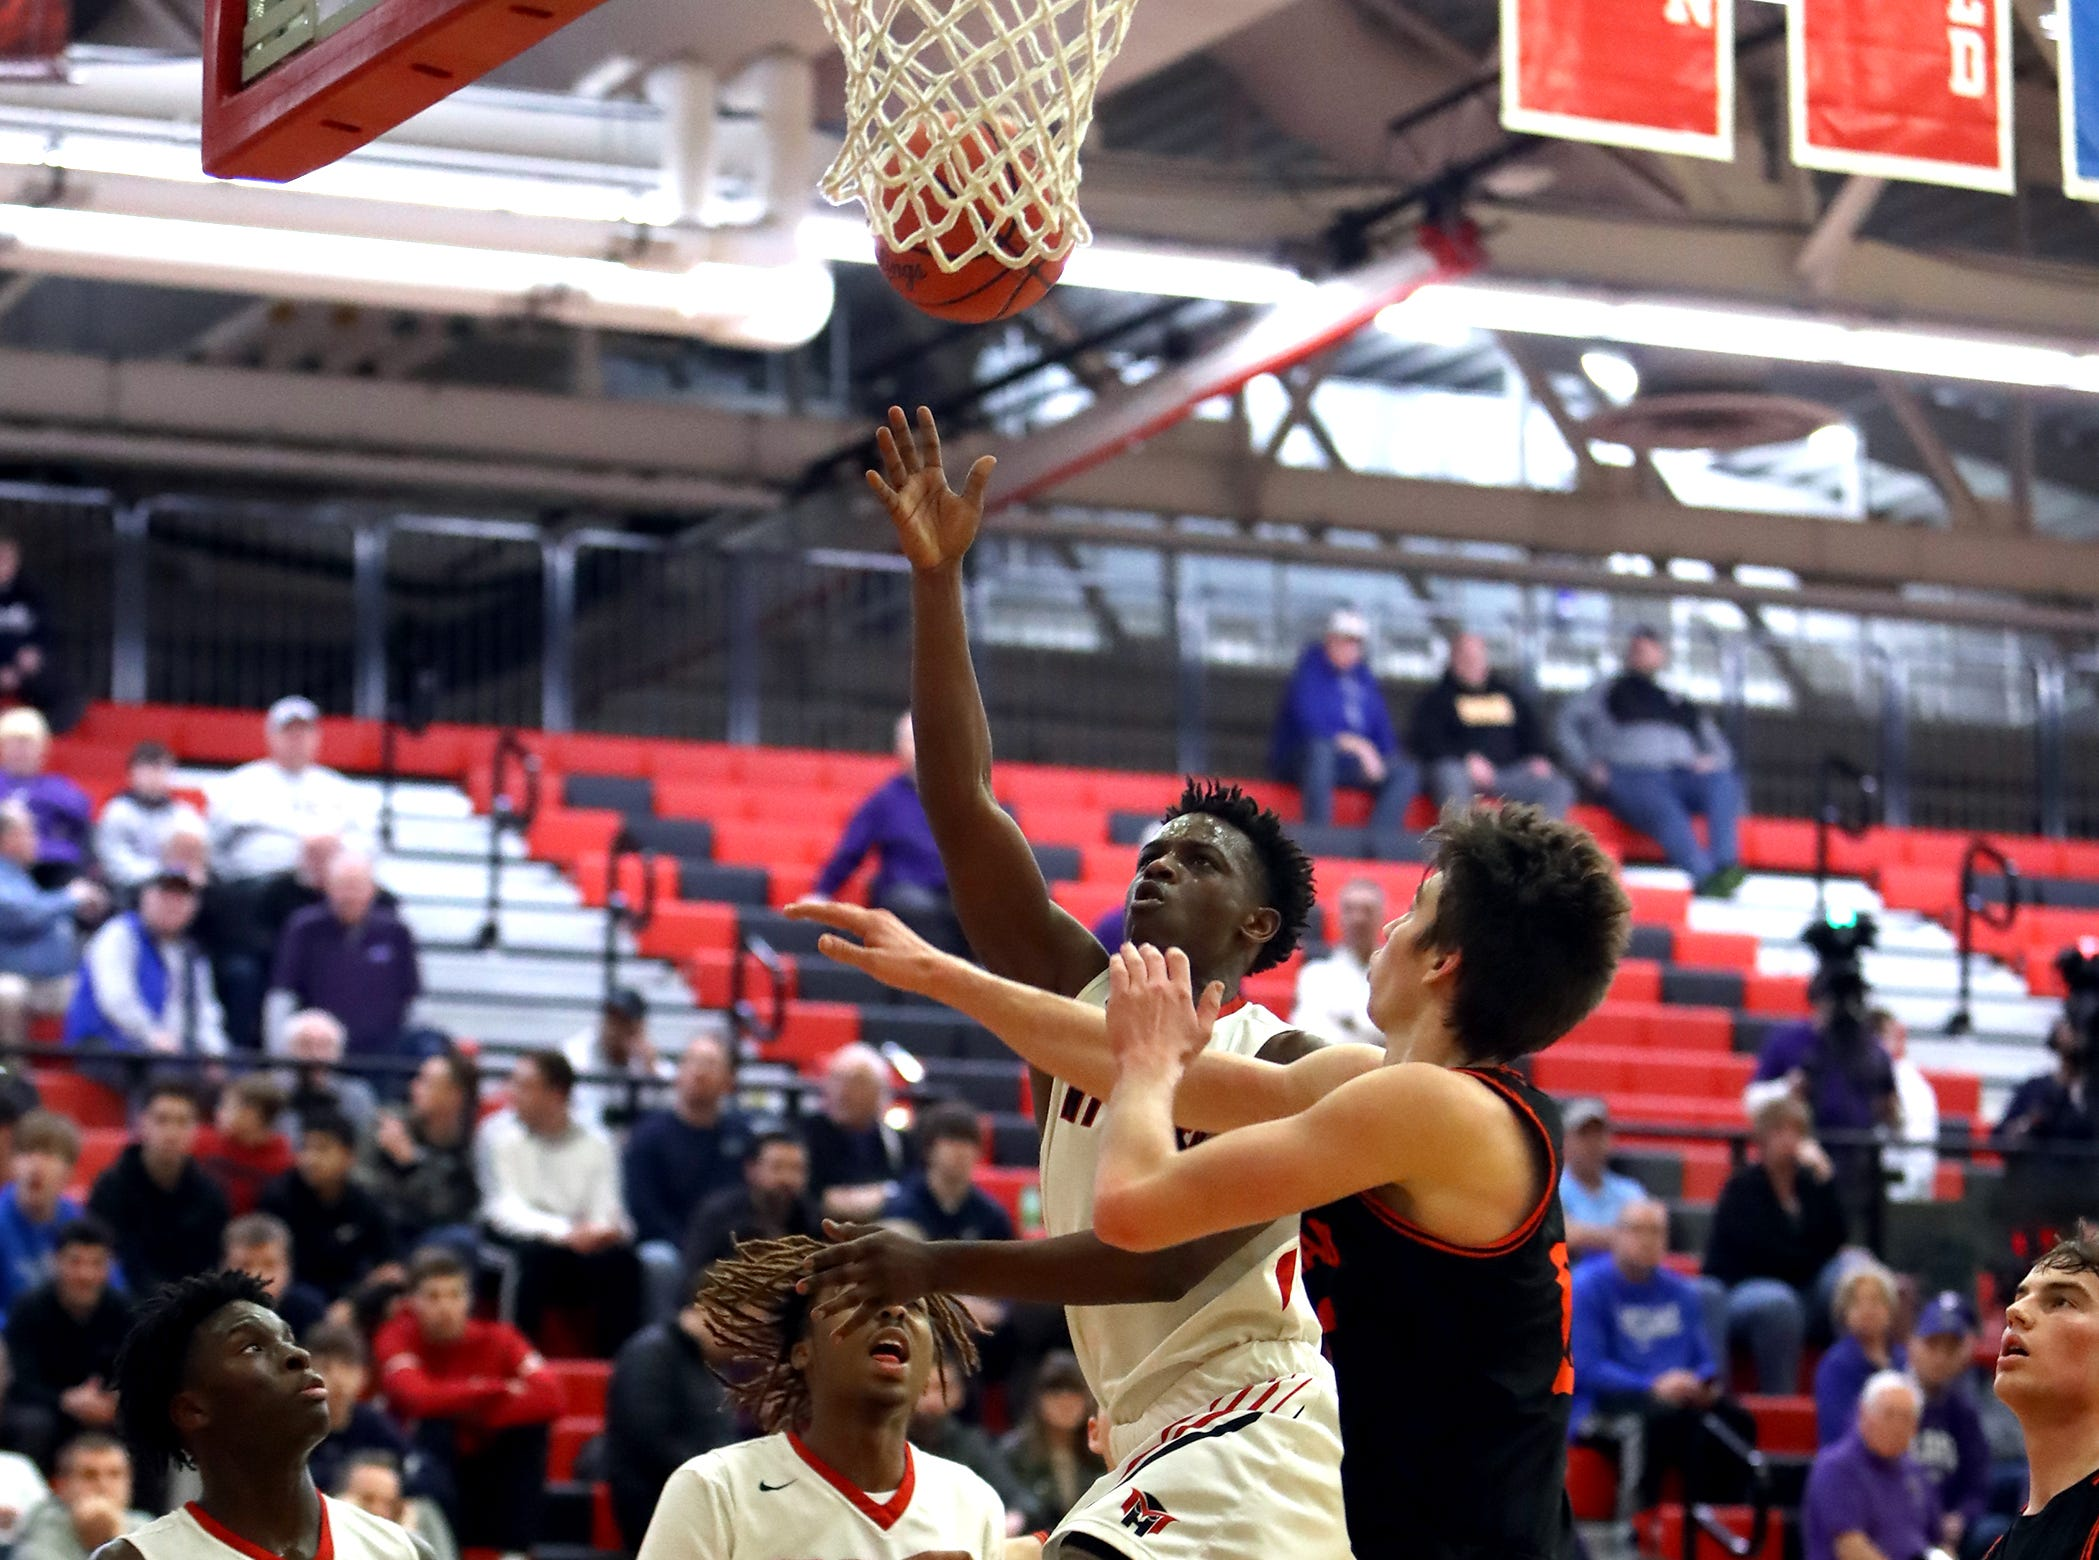 Mount Healthy guard Aushadon Mathis drivers and scores in the sectional playoffs at Lakota West High School Feb. 23, 2019. Mount Healthy defeated Loveland 62-57.